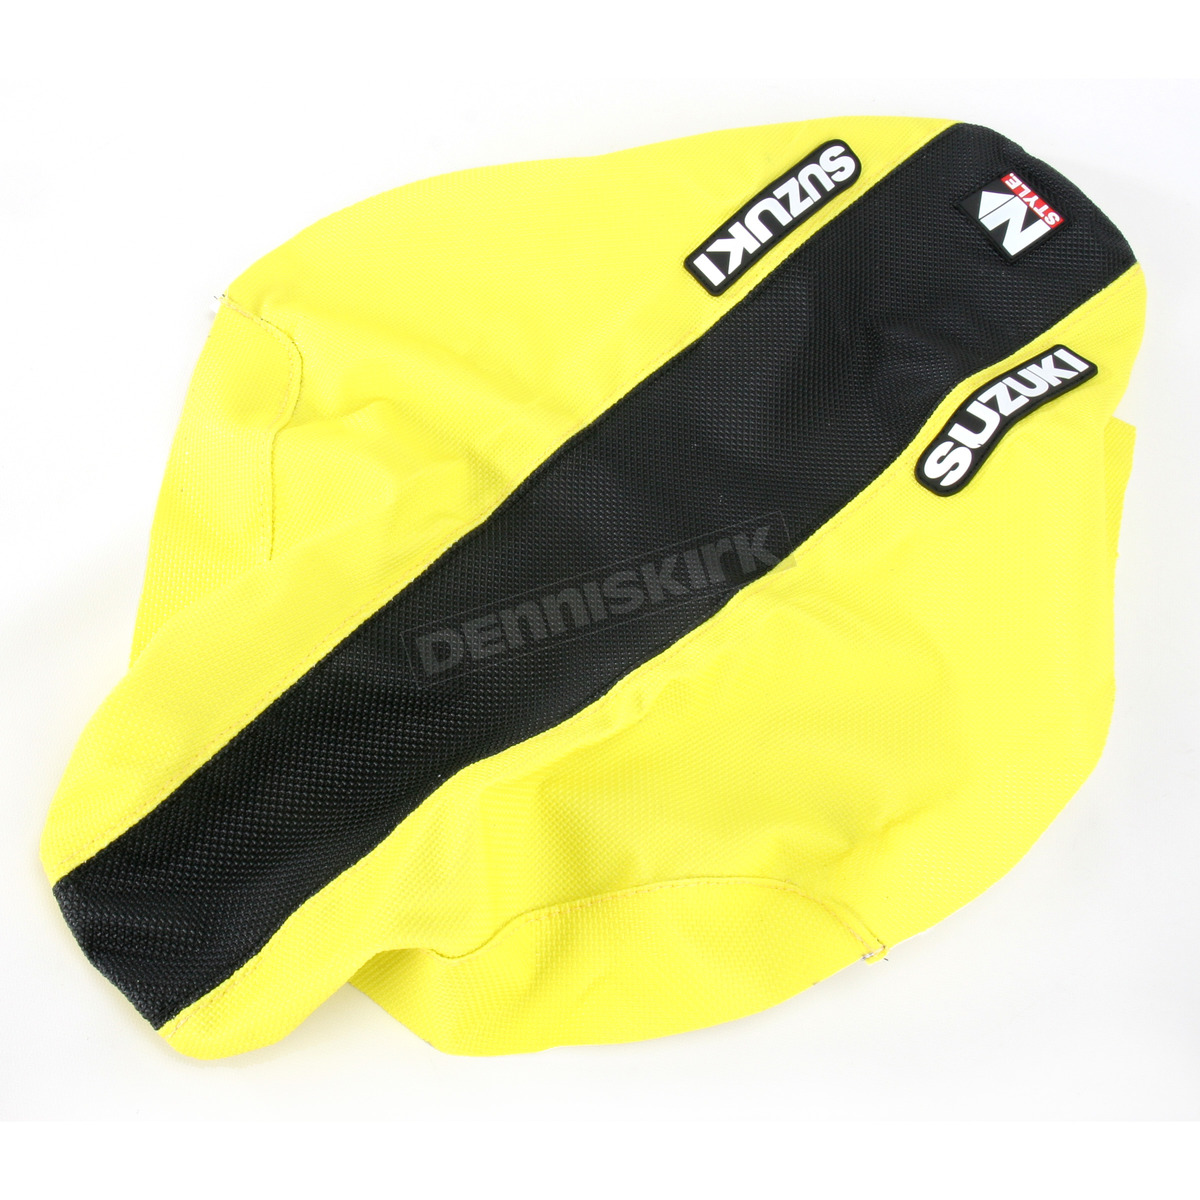 N Style Yellow Black Factory Issue Grip Seat Cover